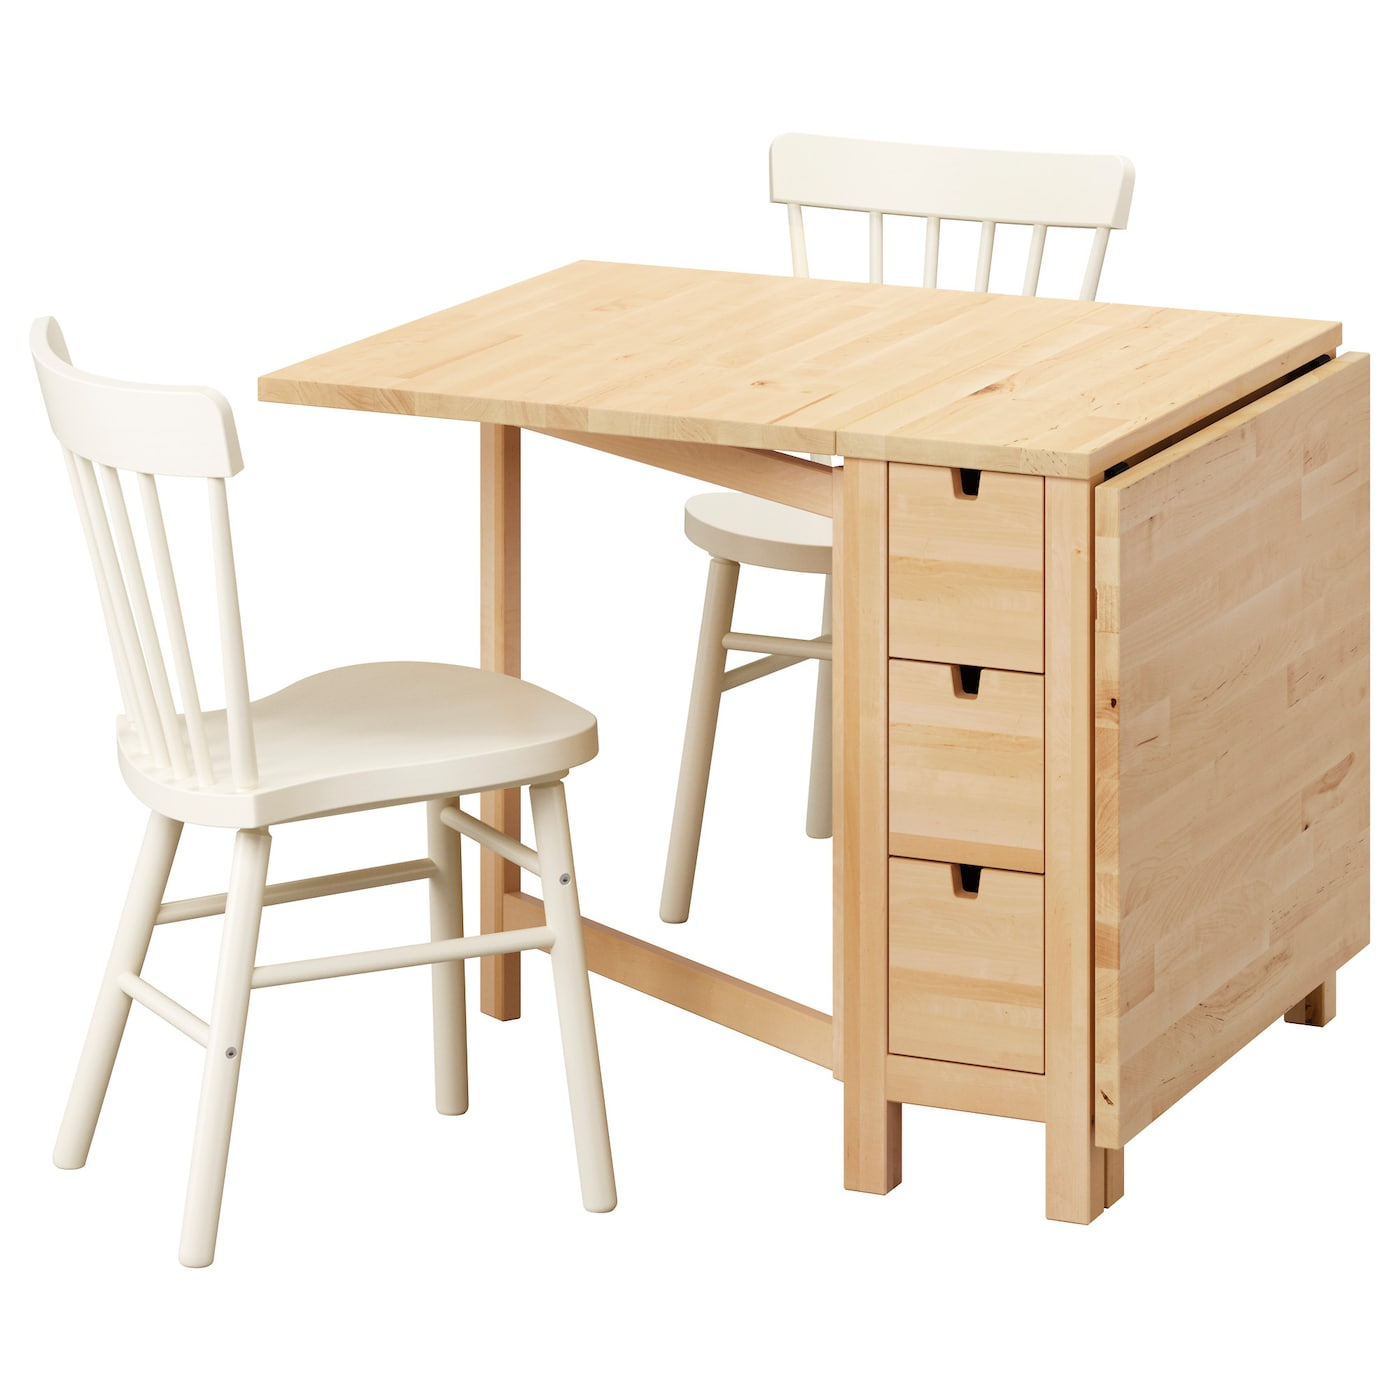 Ikea norden norraryd table and 2 chairs solid wood is a hardwearing natural material